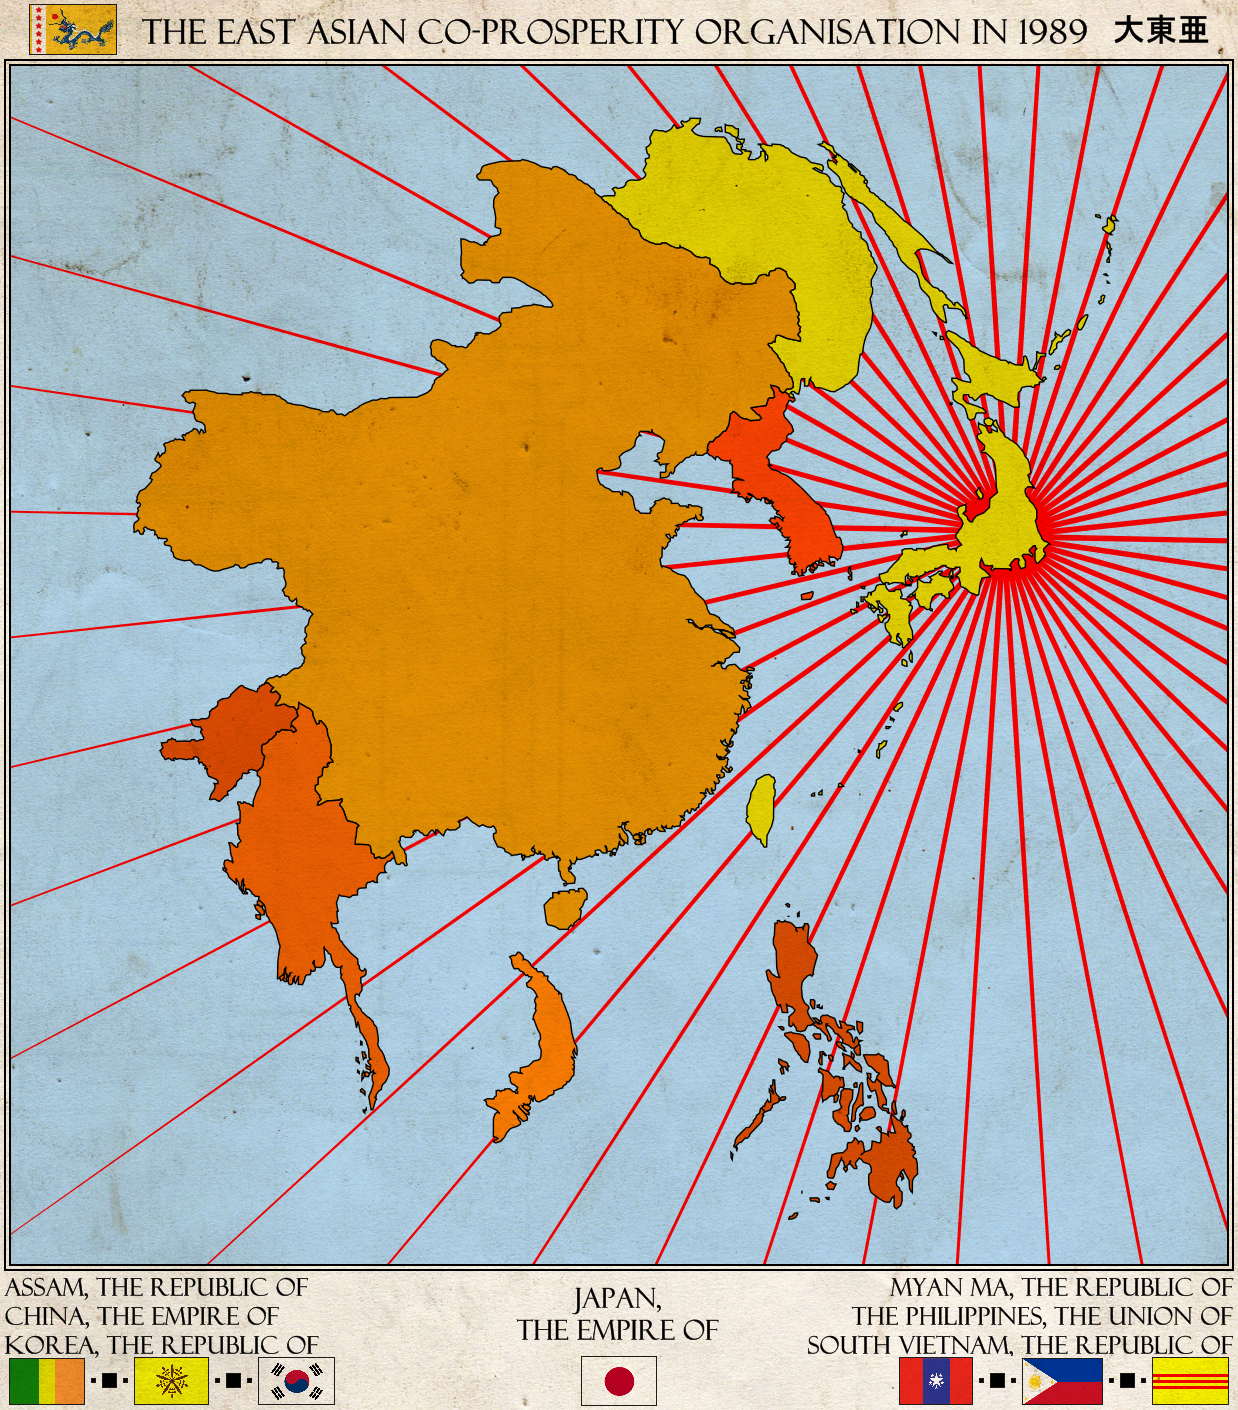 Post war japan and the eaco by kurarun on deviantart post war japan and the eaco by kurarun publicscrutiny Images